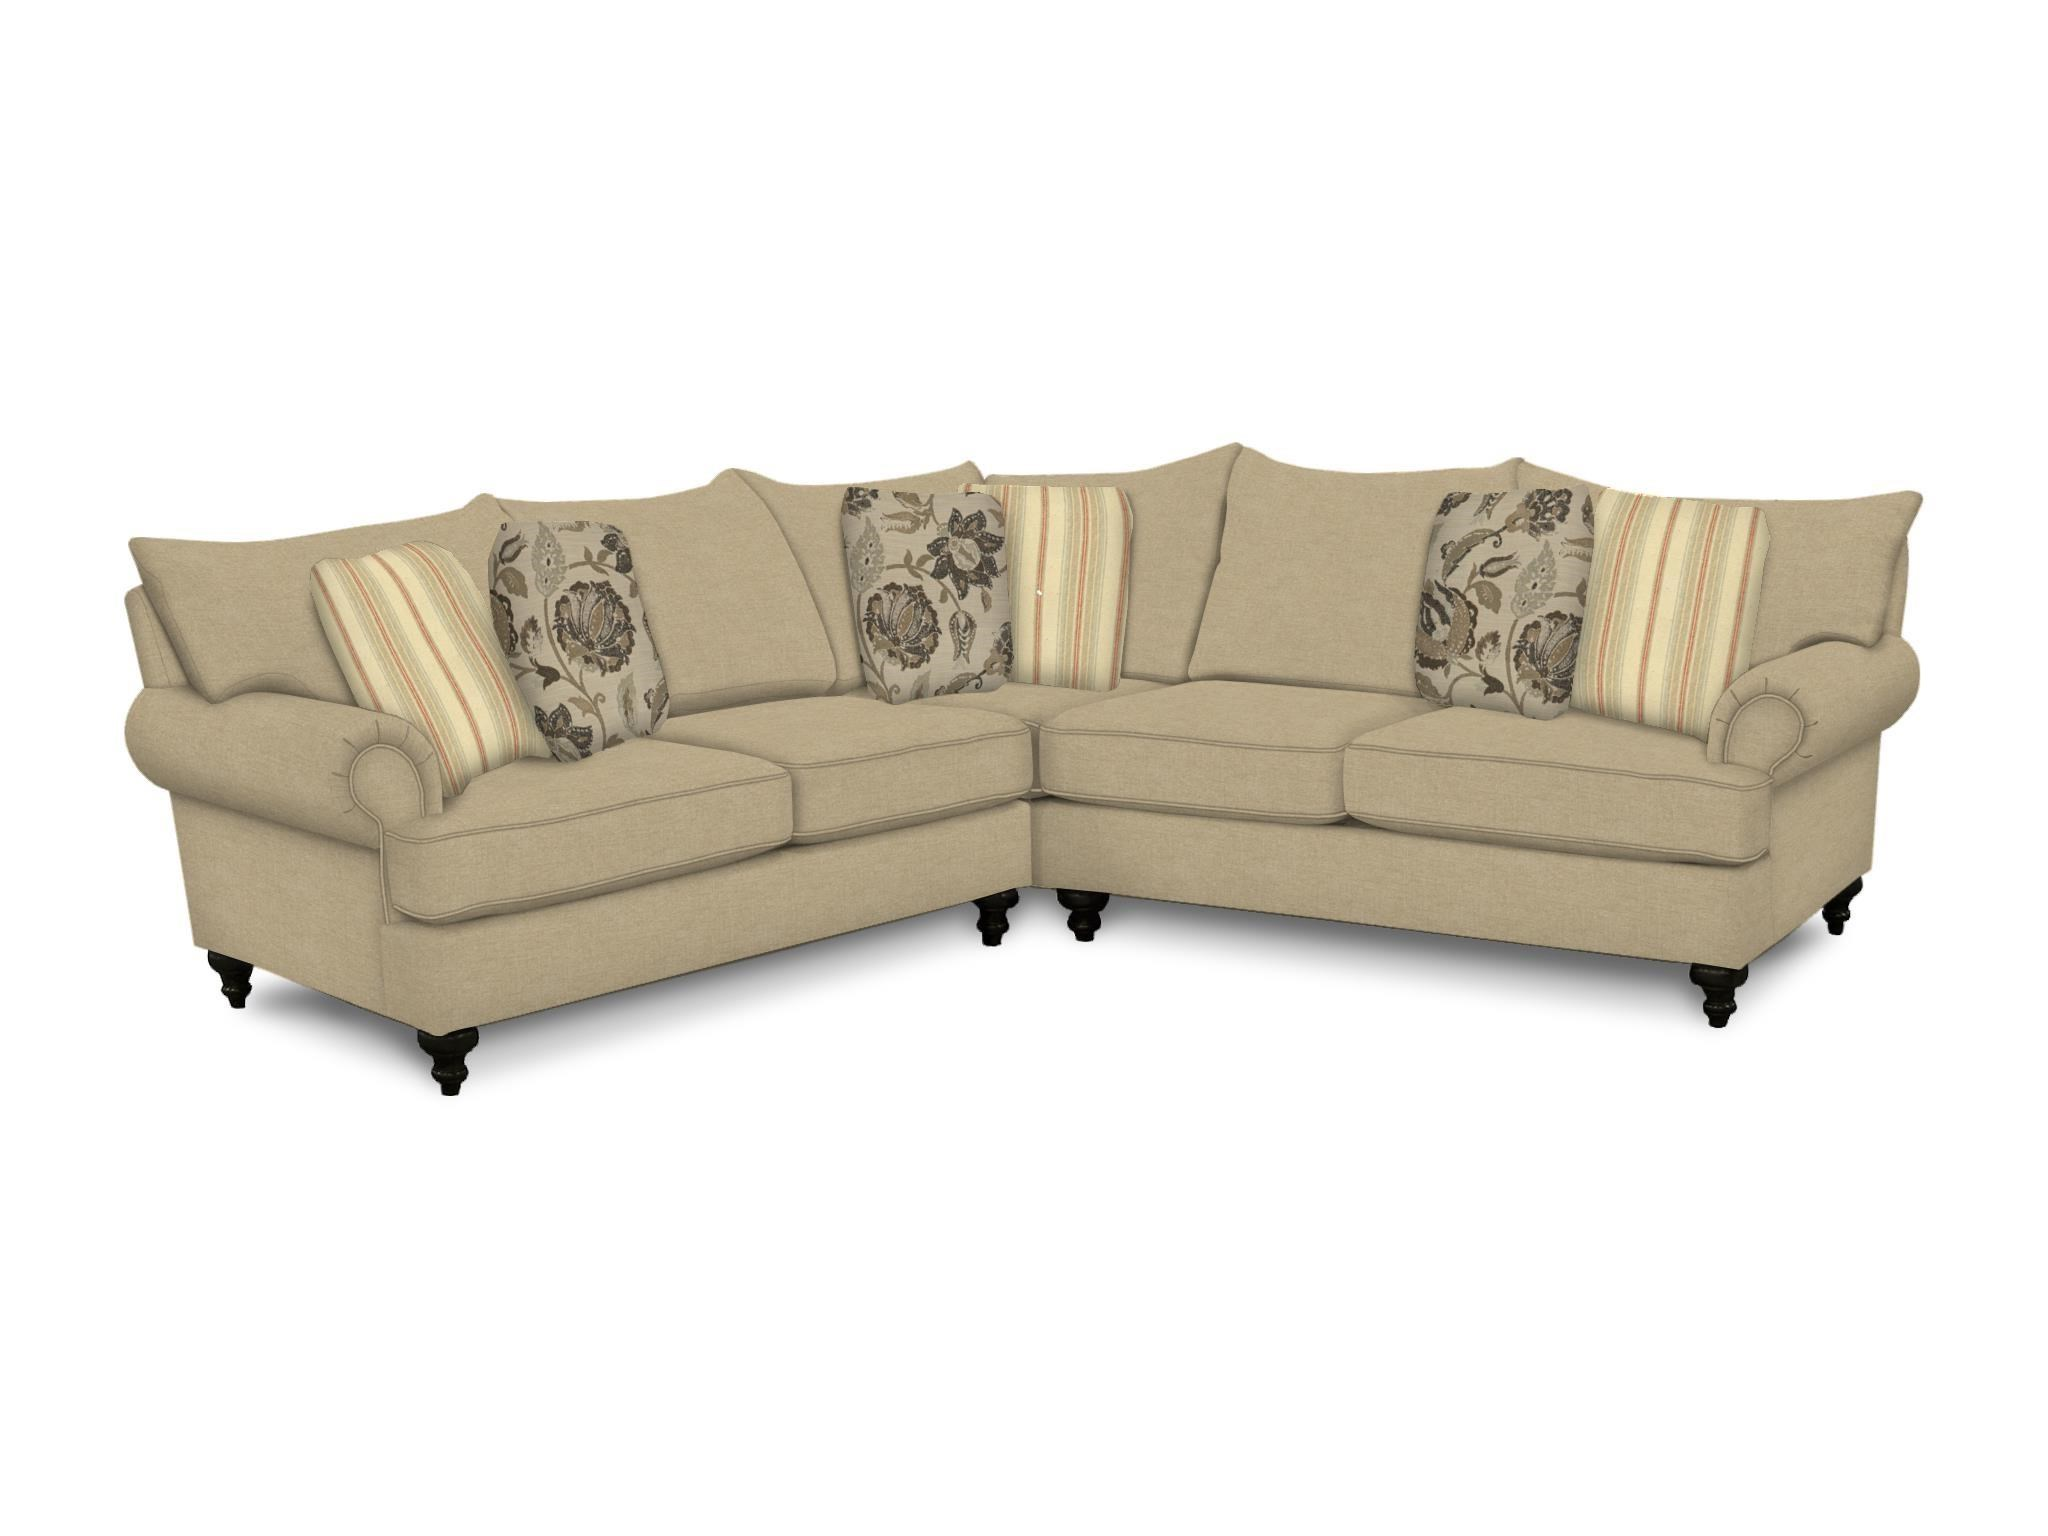 England Rosalie Sectional Sofa - Item Number: 4Y00-28+63